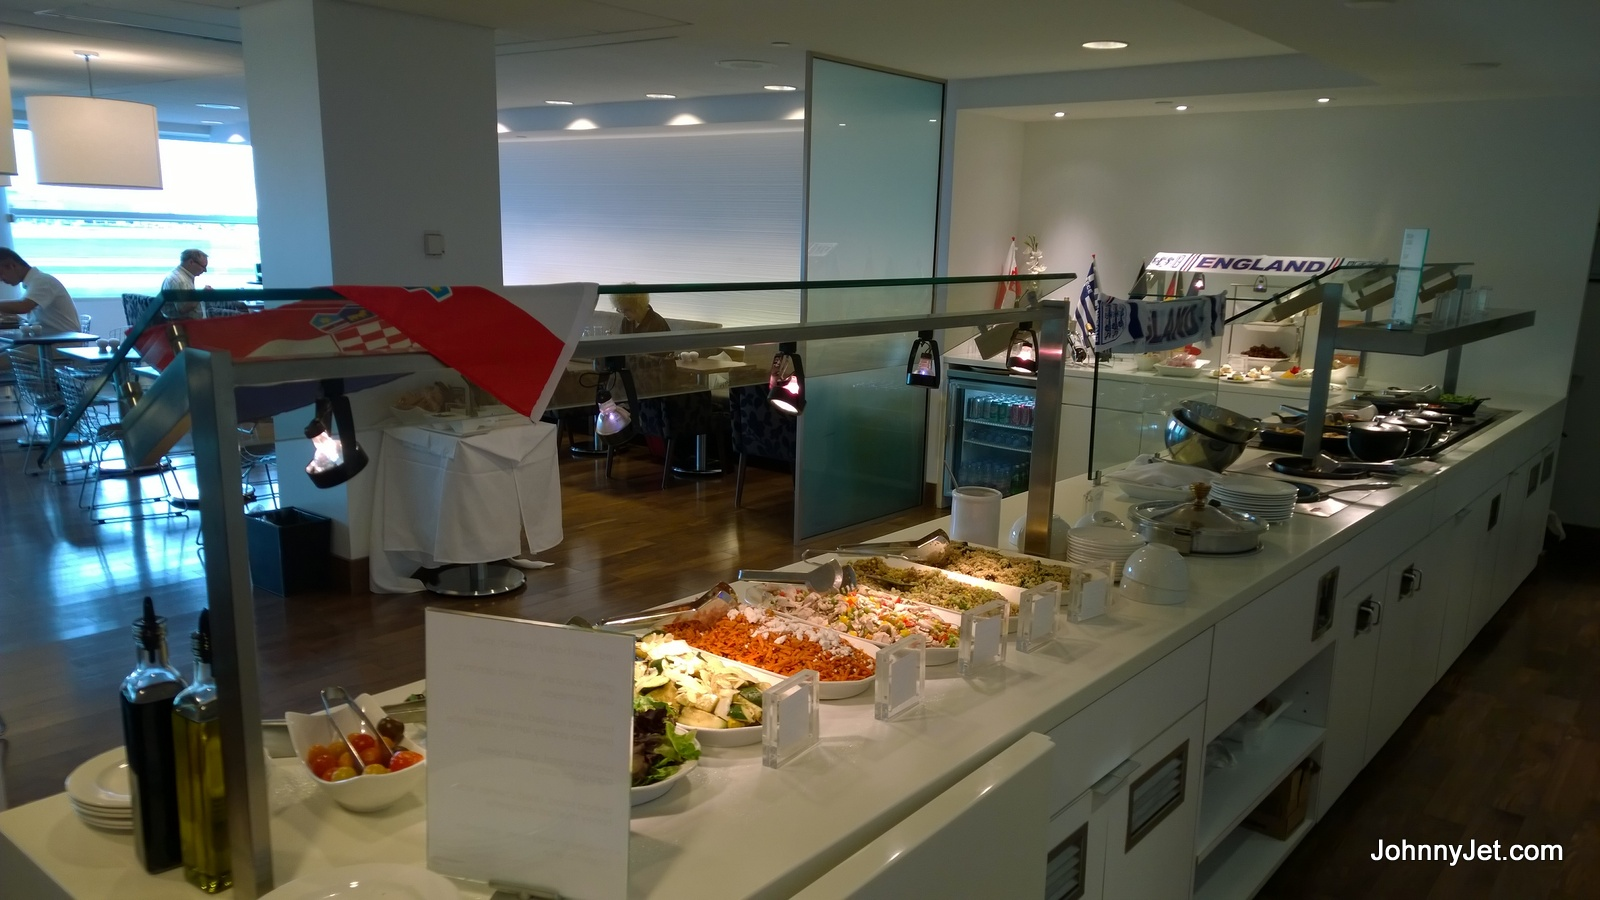 British Airways' Club Lounge at YYZ